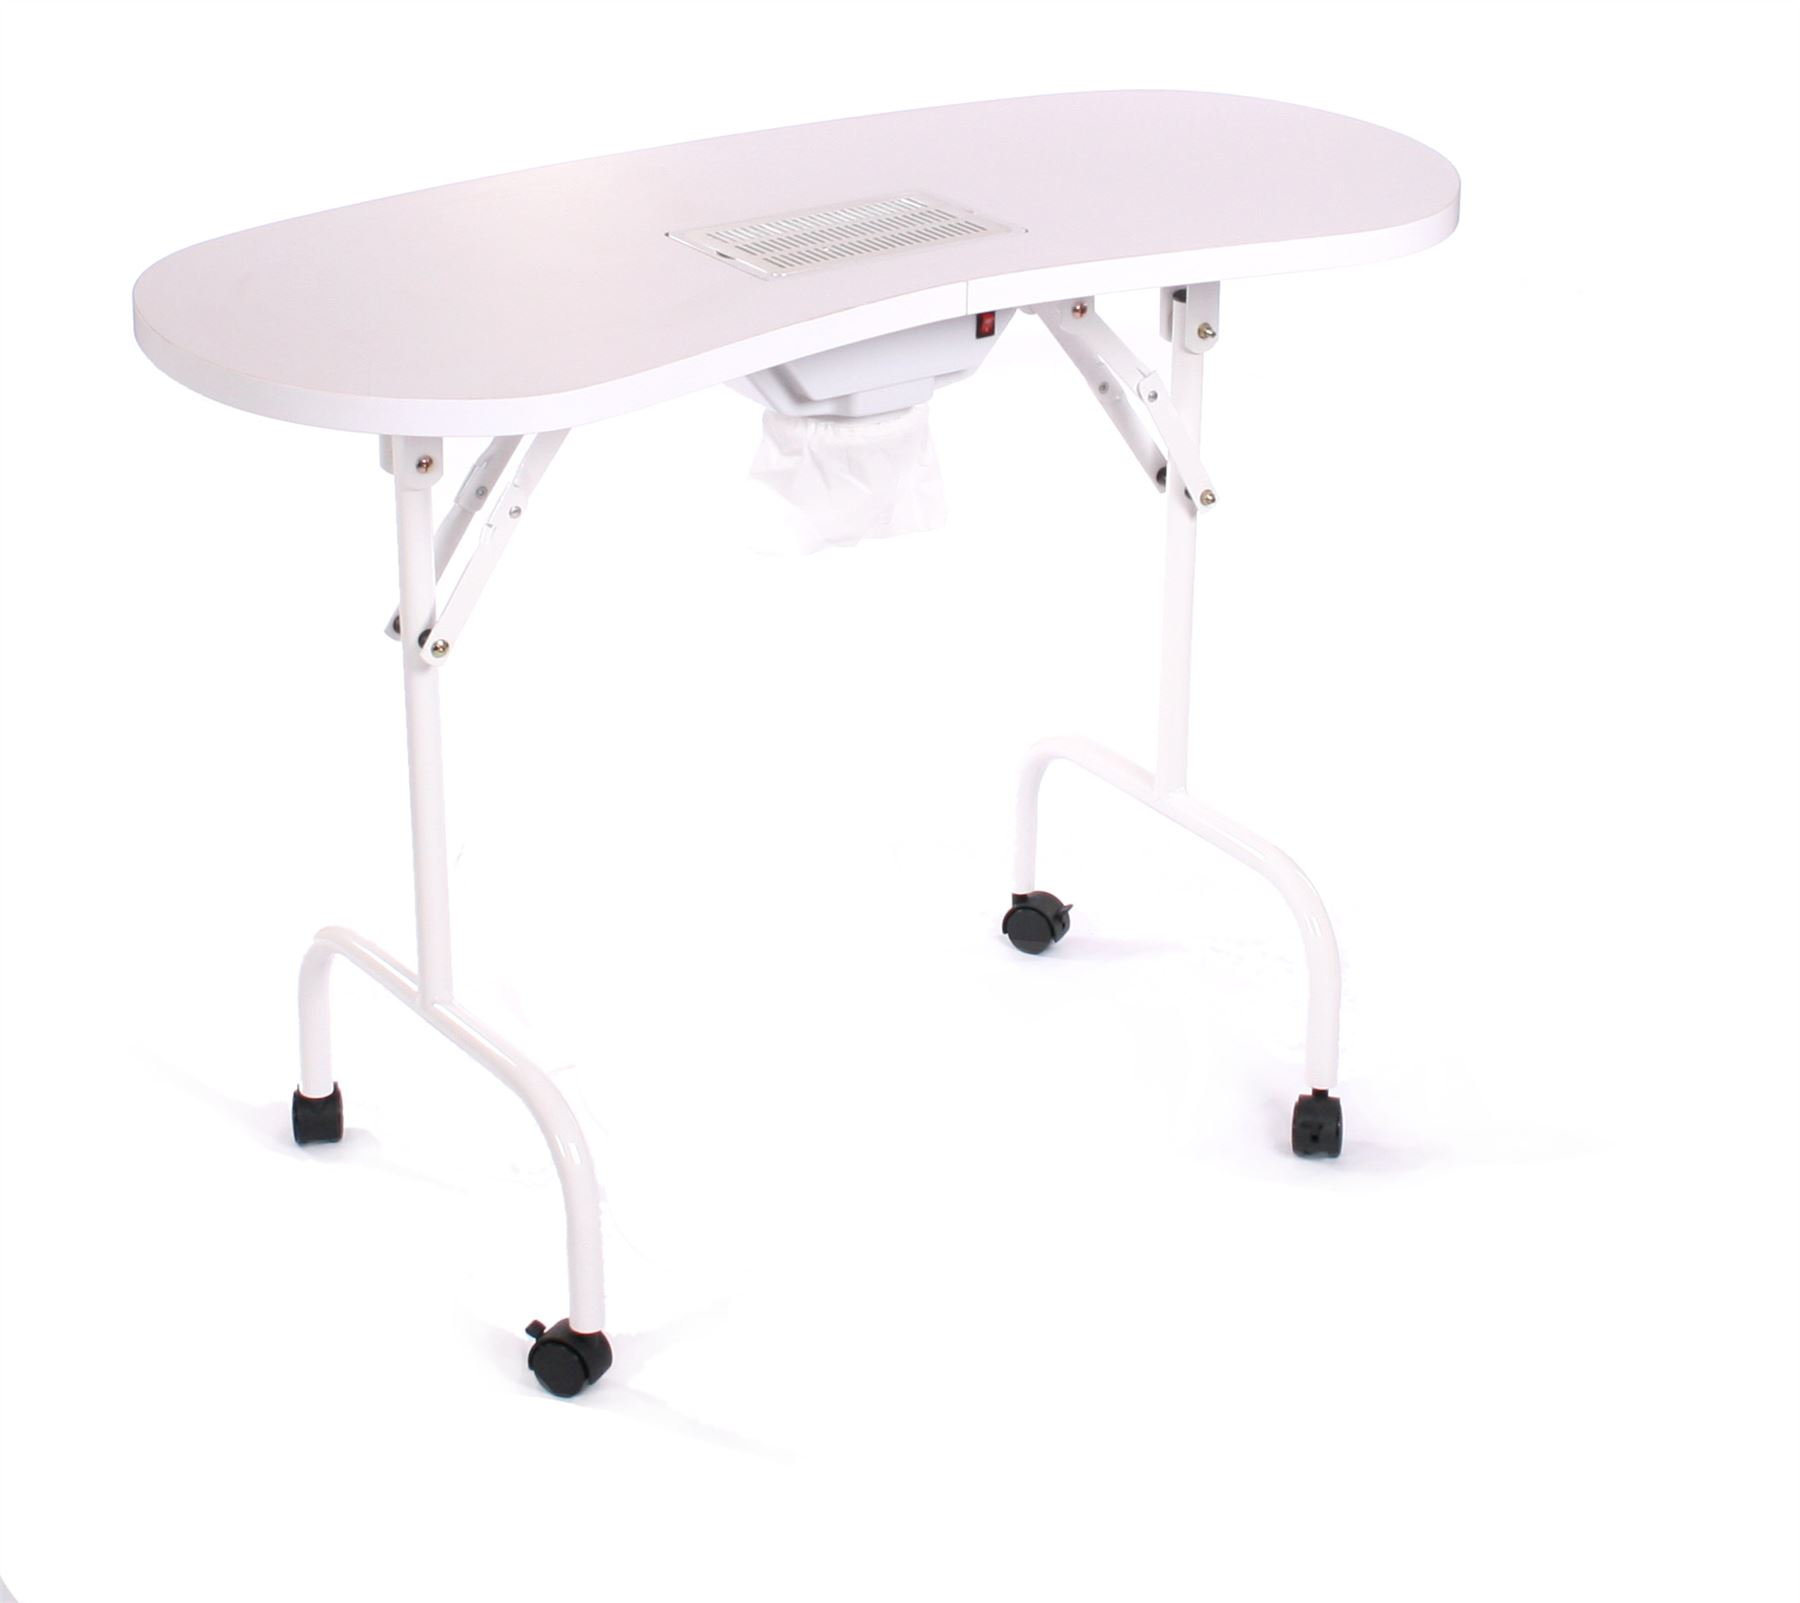 Urbanity portable mobile manicure nail table with extractor fan dust ...